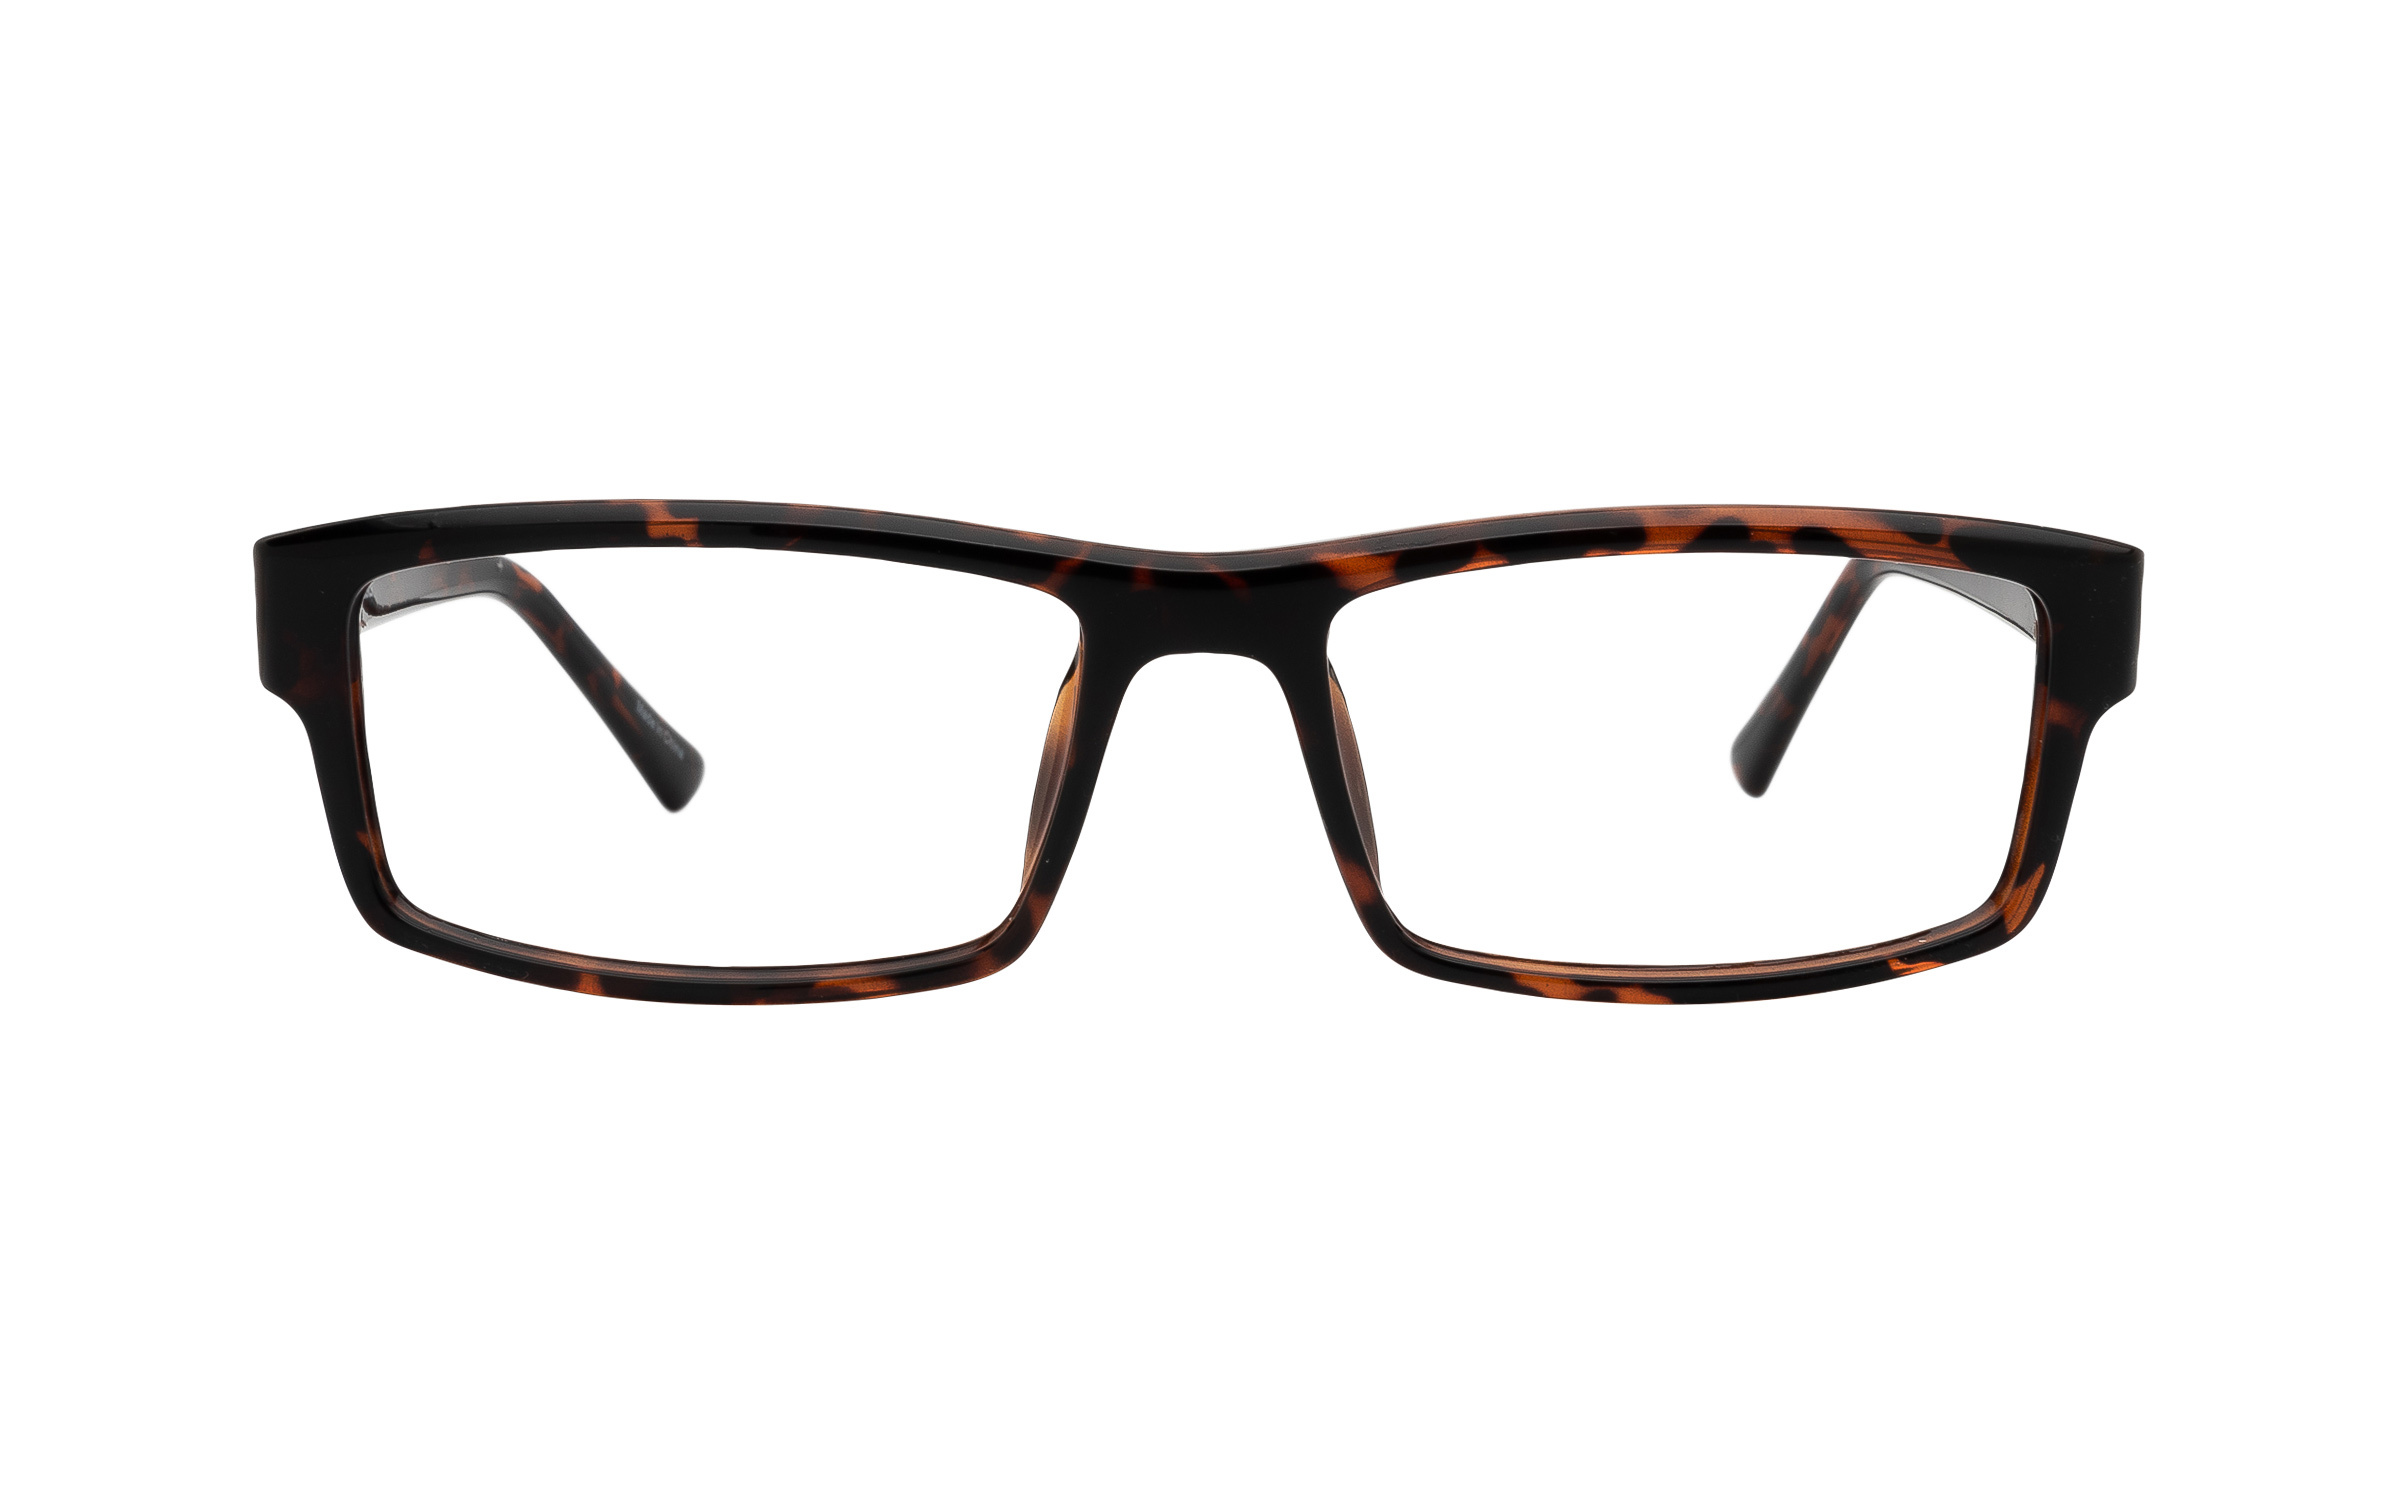 Clearly Basics Dryden COL141 C03 (53) Eyeglasses and Frame in Tortoise/Brown